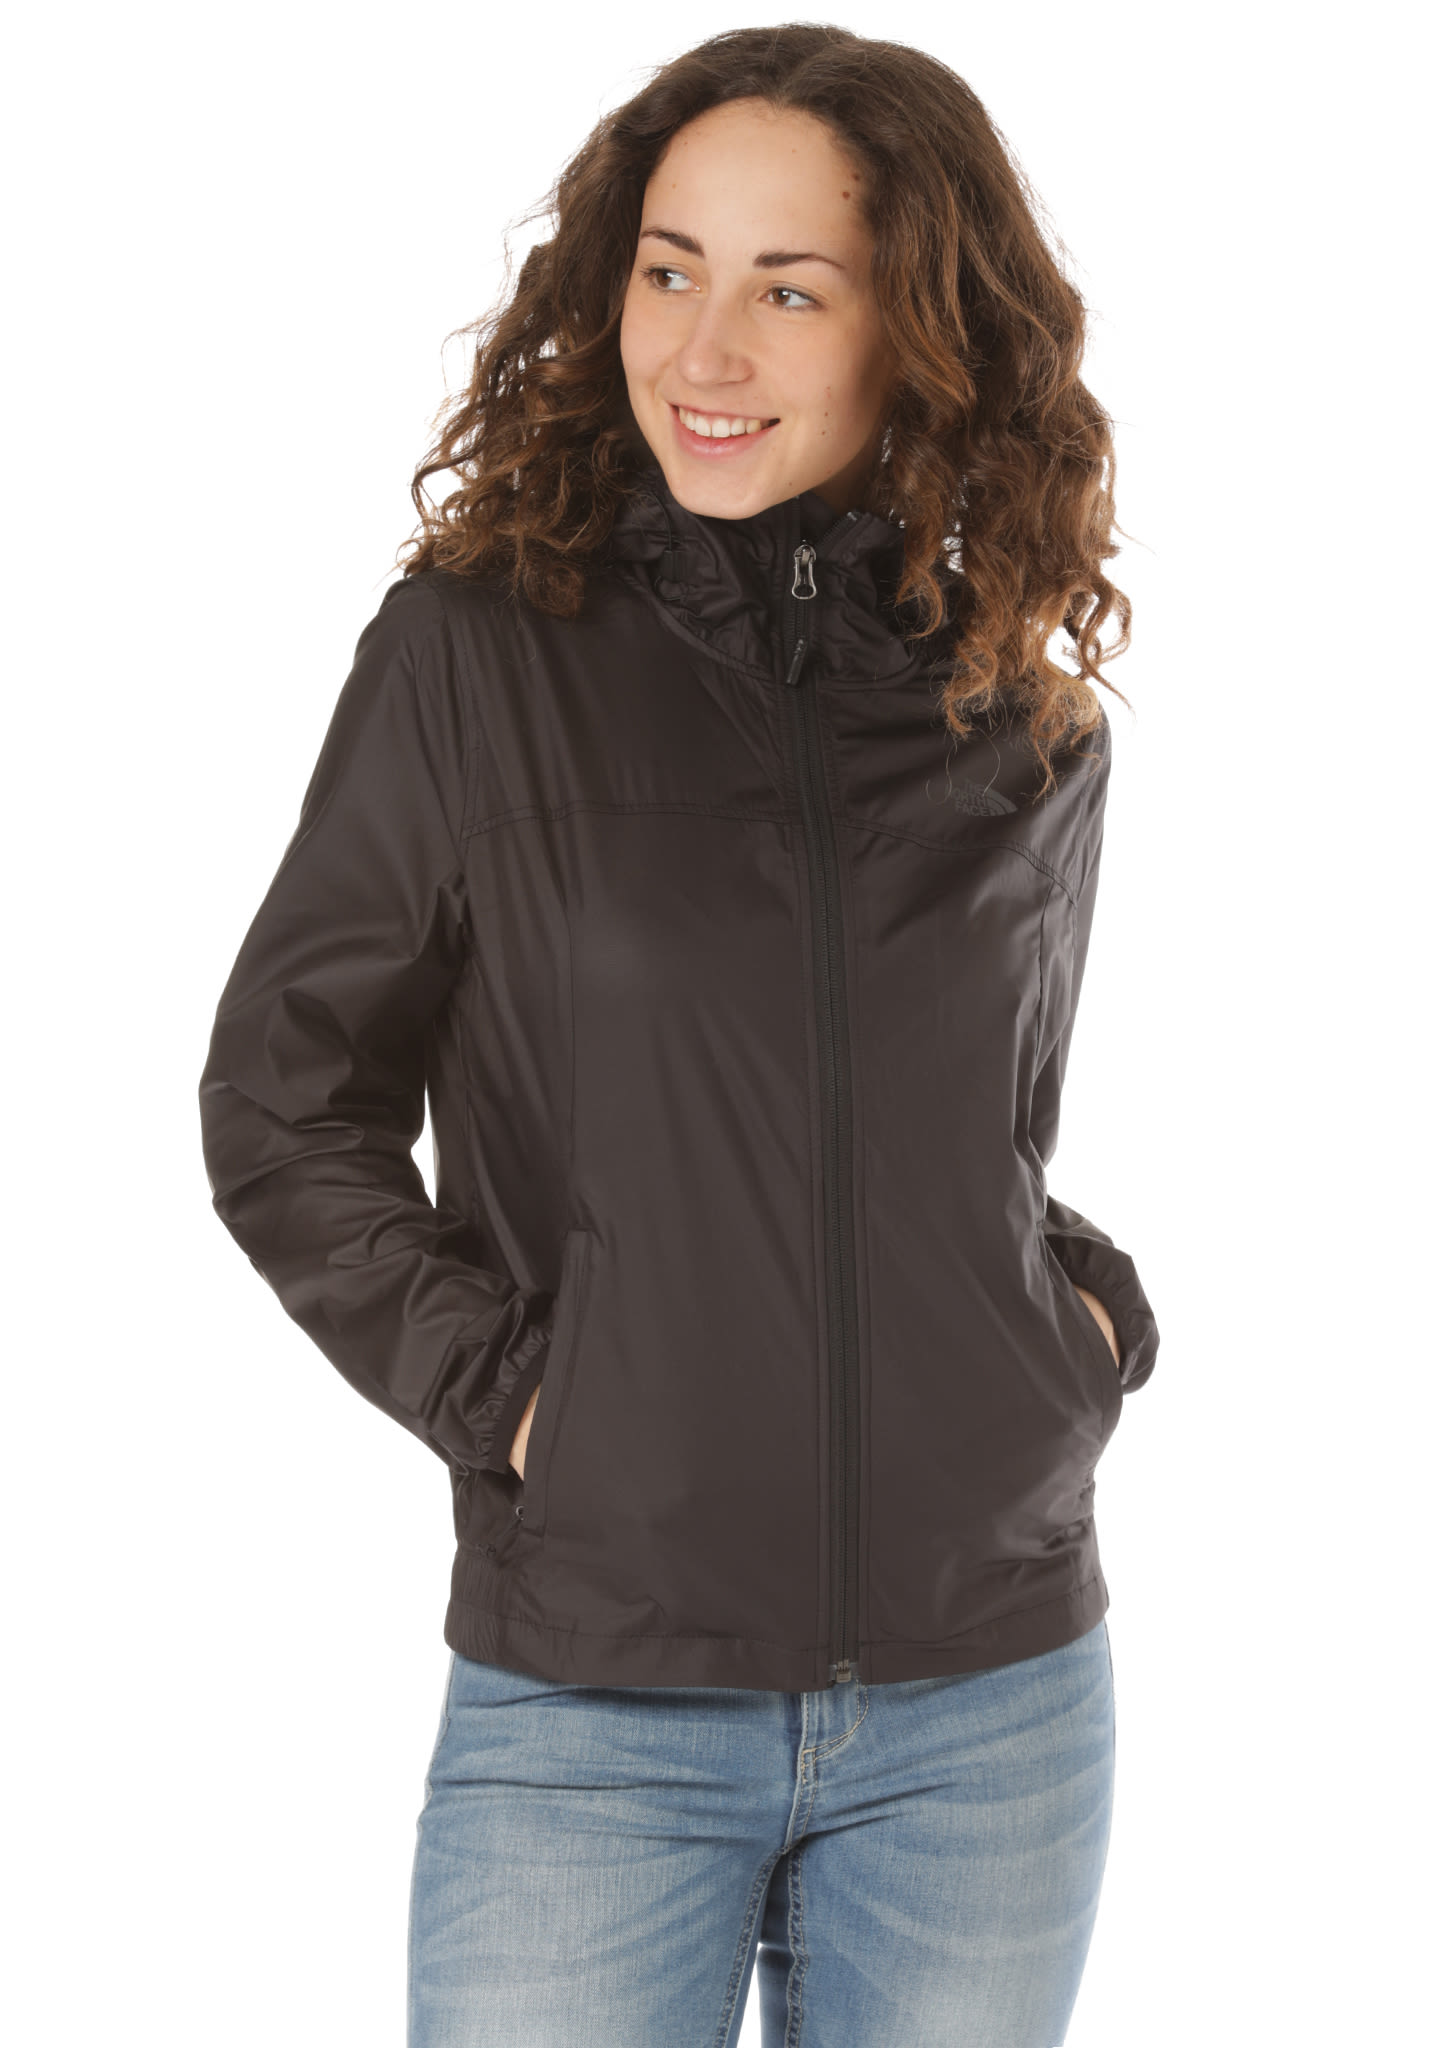 newest 9474c a4310 THE NORTH FACE Cyclone - Outdoorjacke für Damen - Schwarz